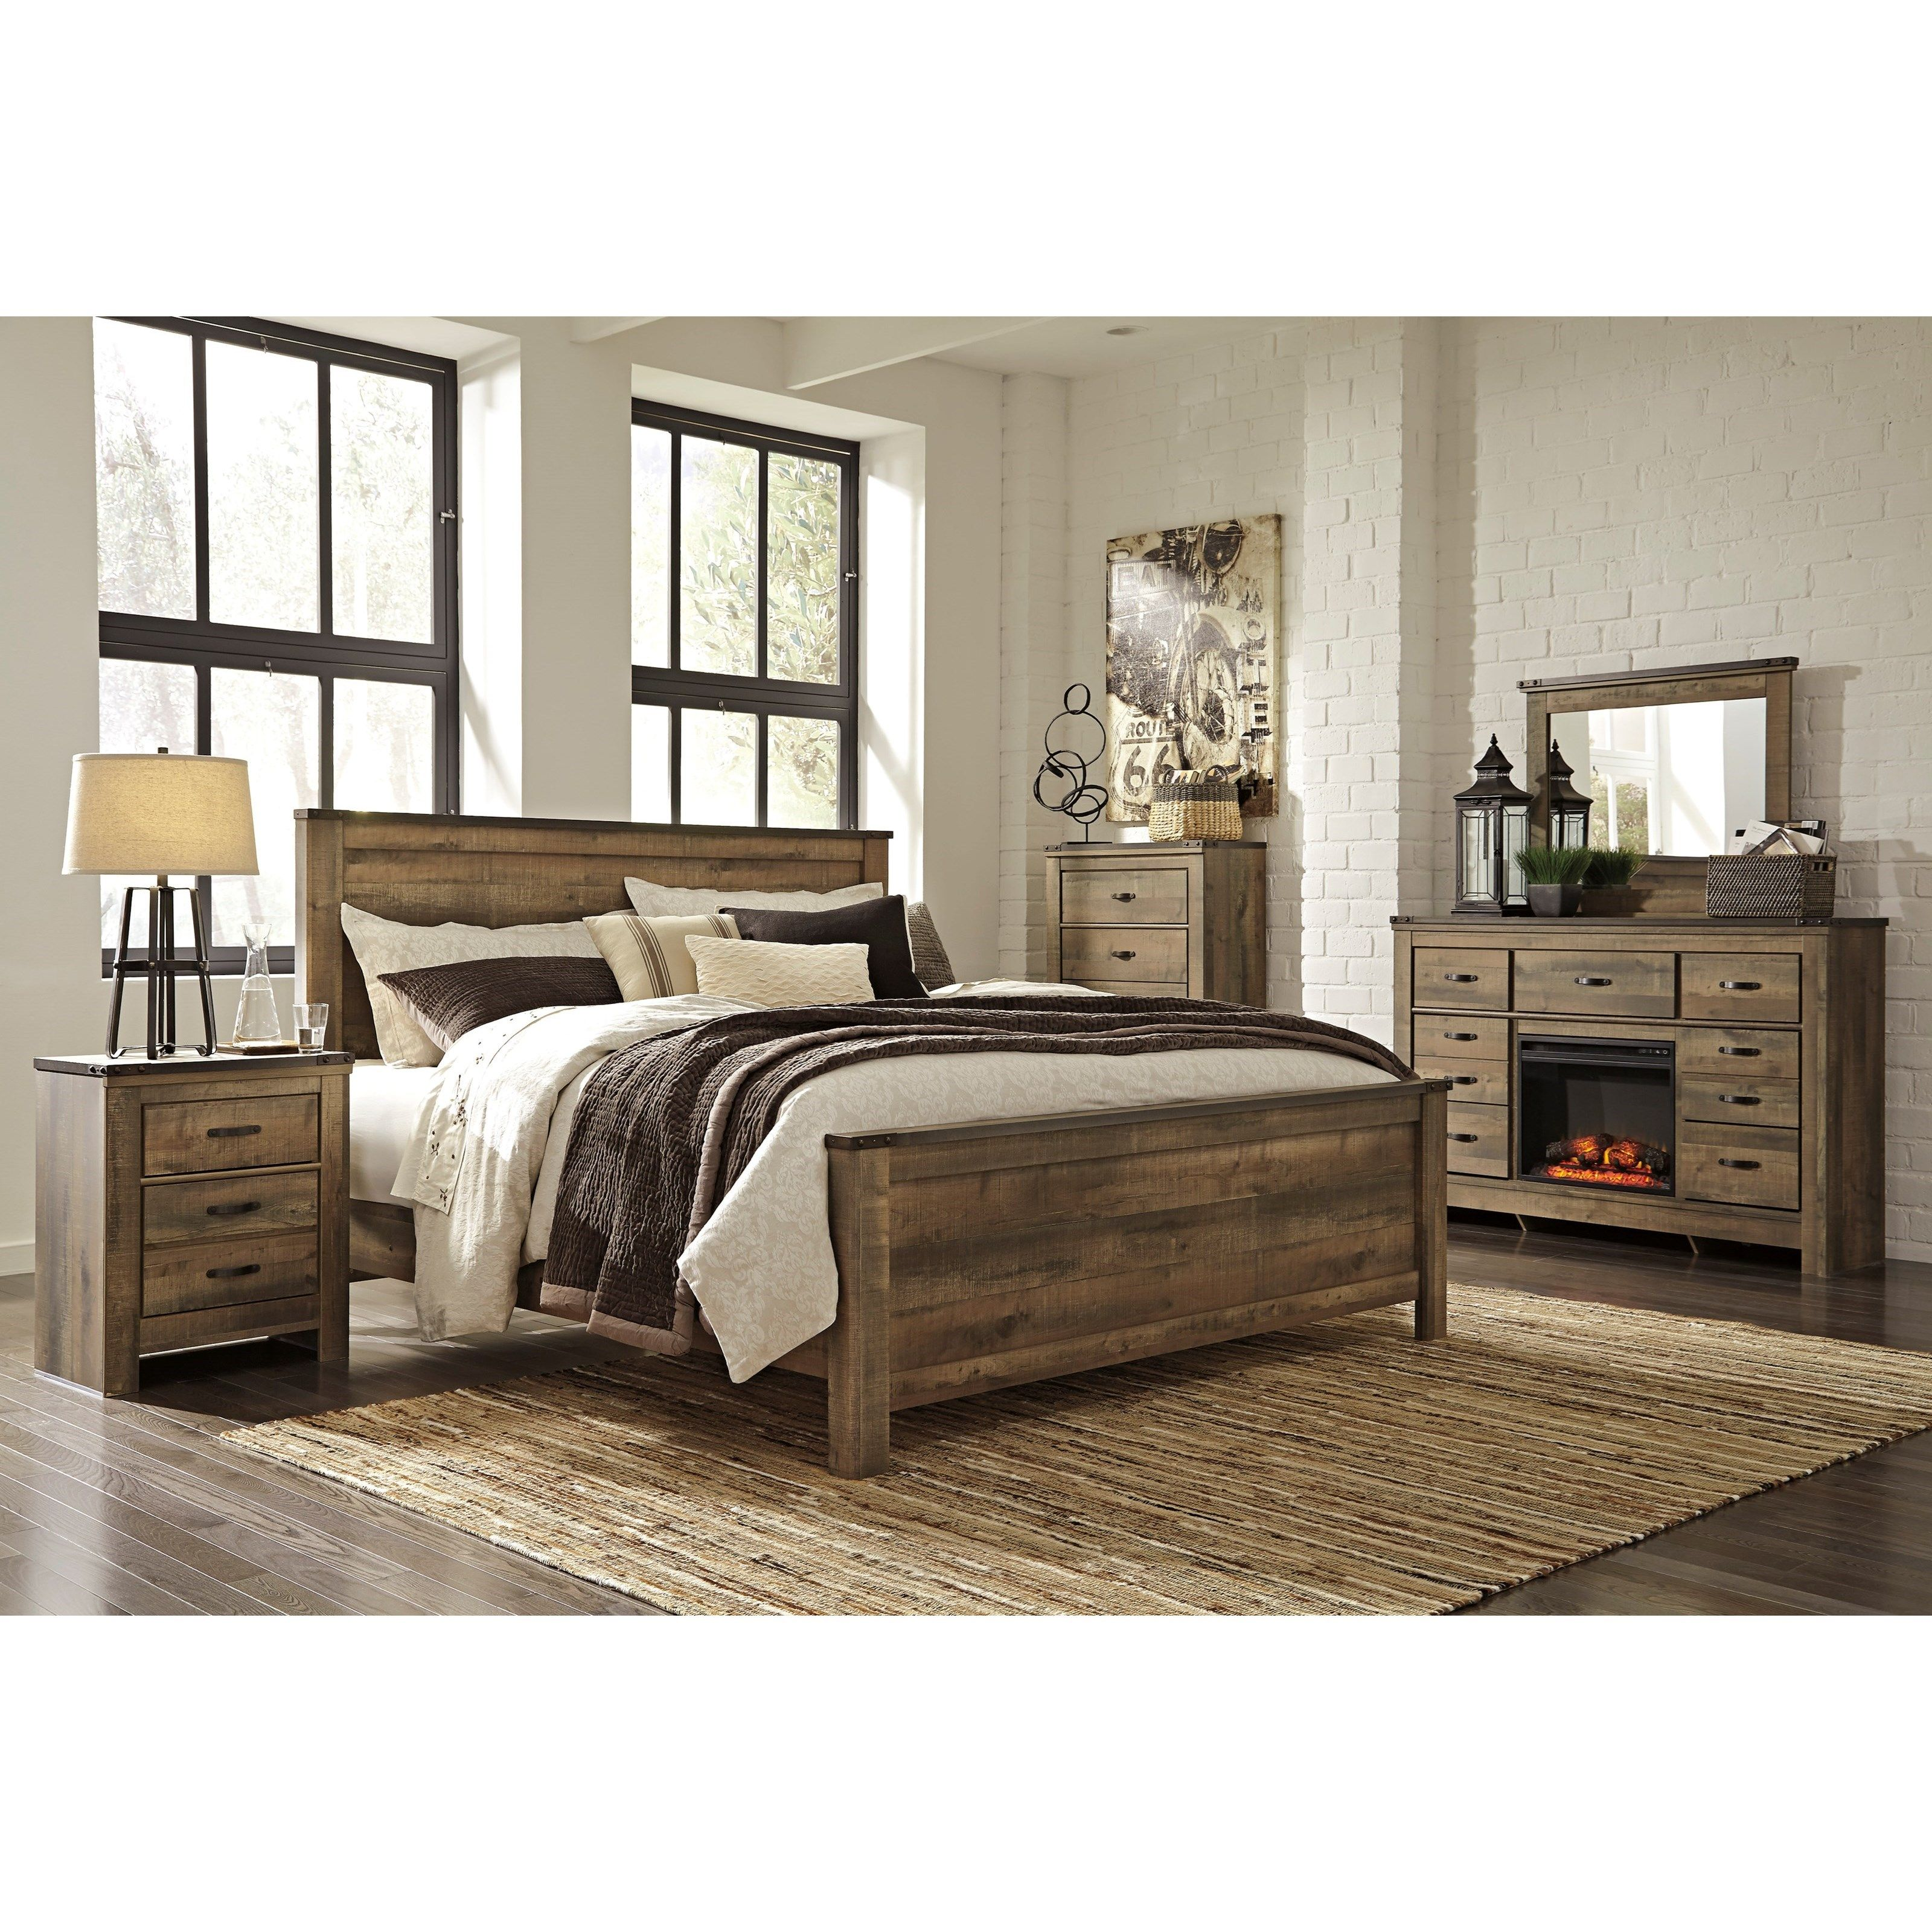 Trinell King Bedroom Group By Signature Design By Ashley At Wayside Furniture Bedroom Furniture Sets Bedroom Sets Queen King Bedroom Sets